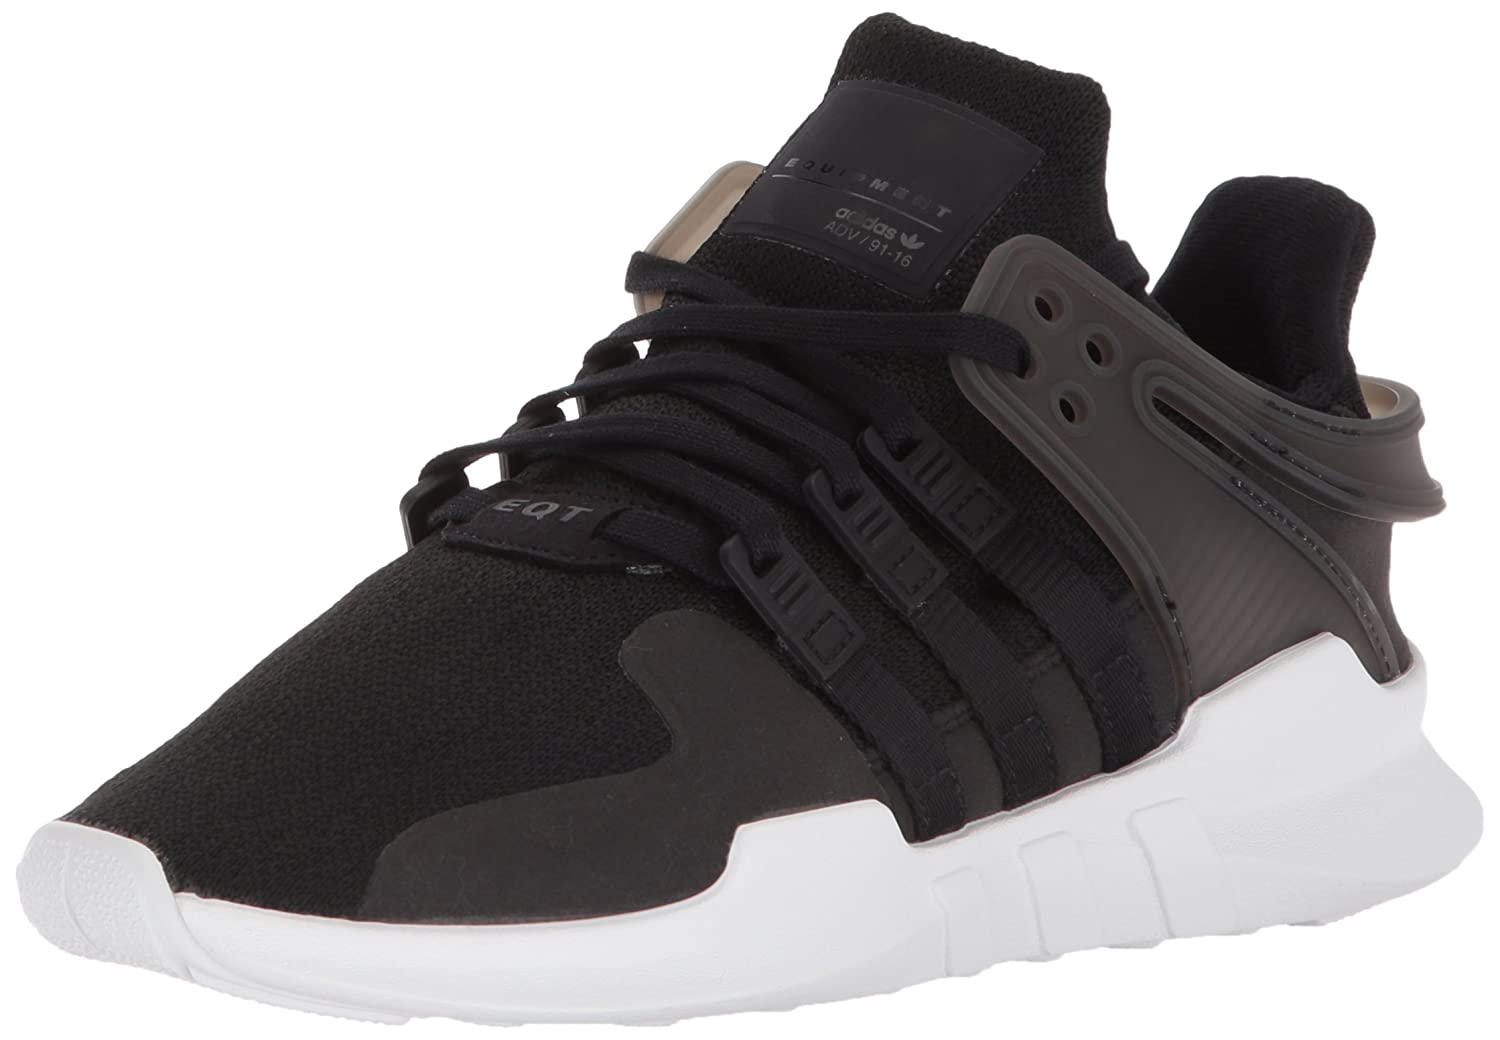 premium selection 45555 326f5 adidas Boys' Eqt Support Adv J